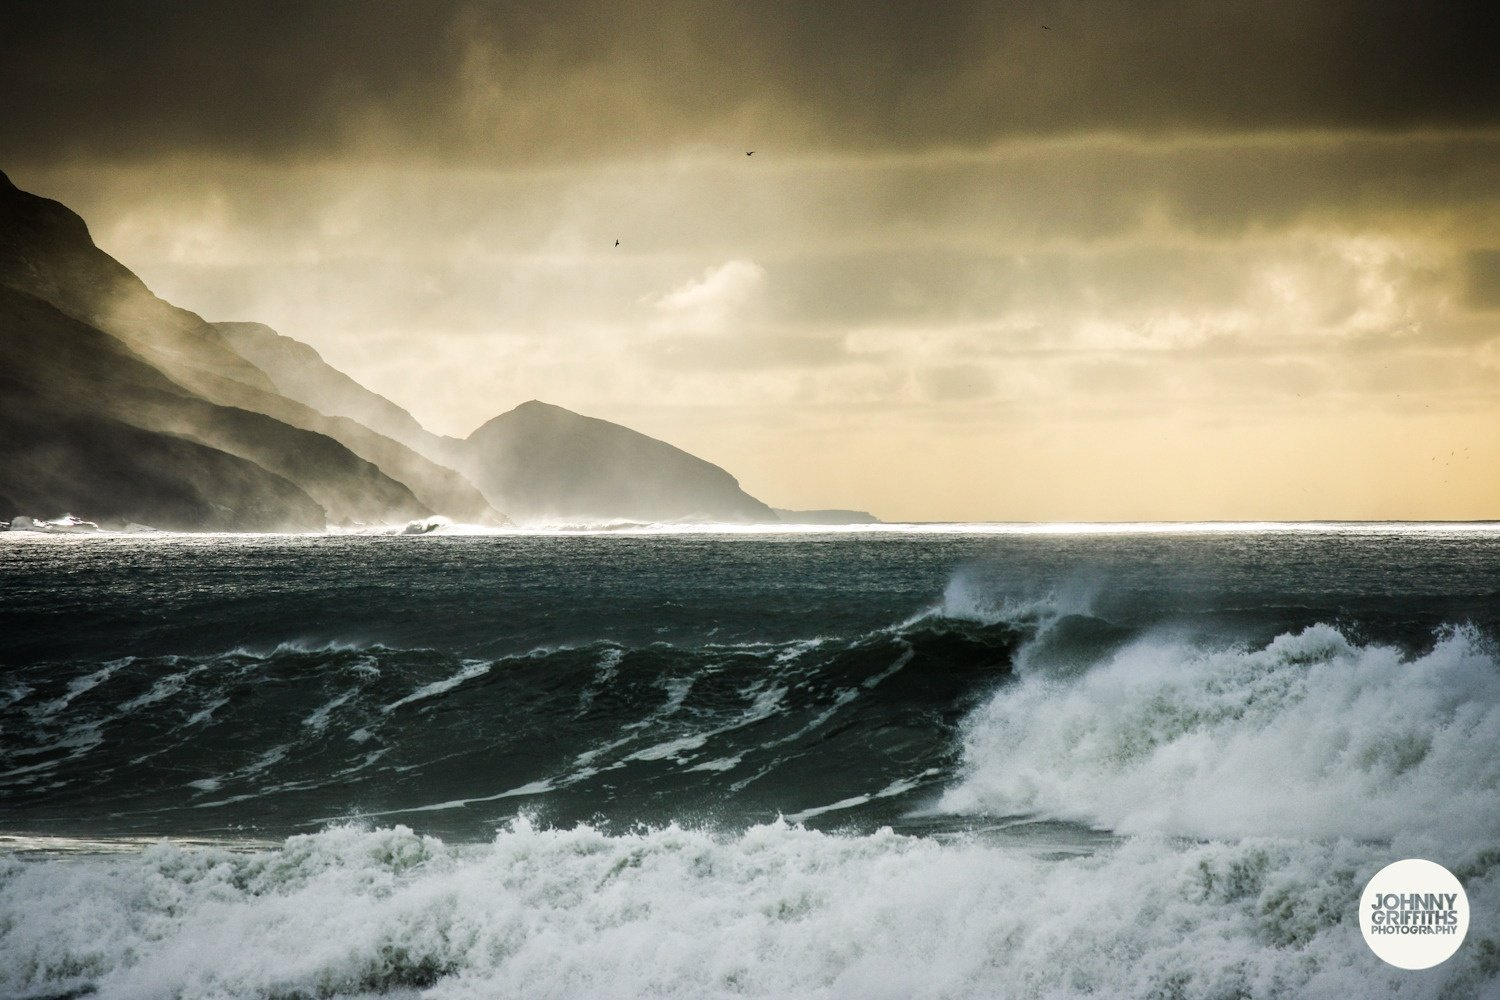 Johnny Griffiths Photography's photo of Widemouth Bay